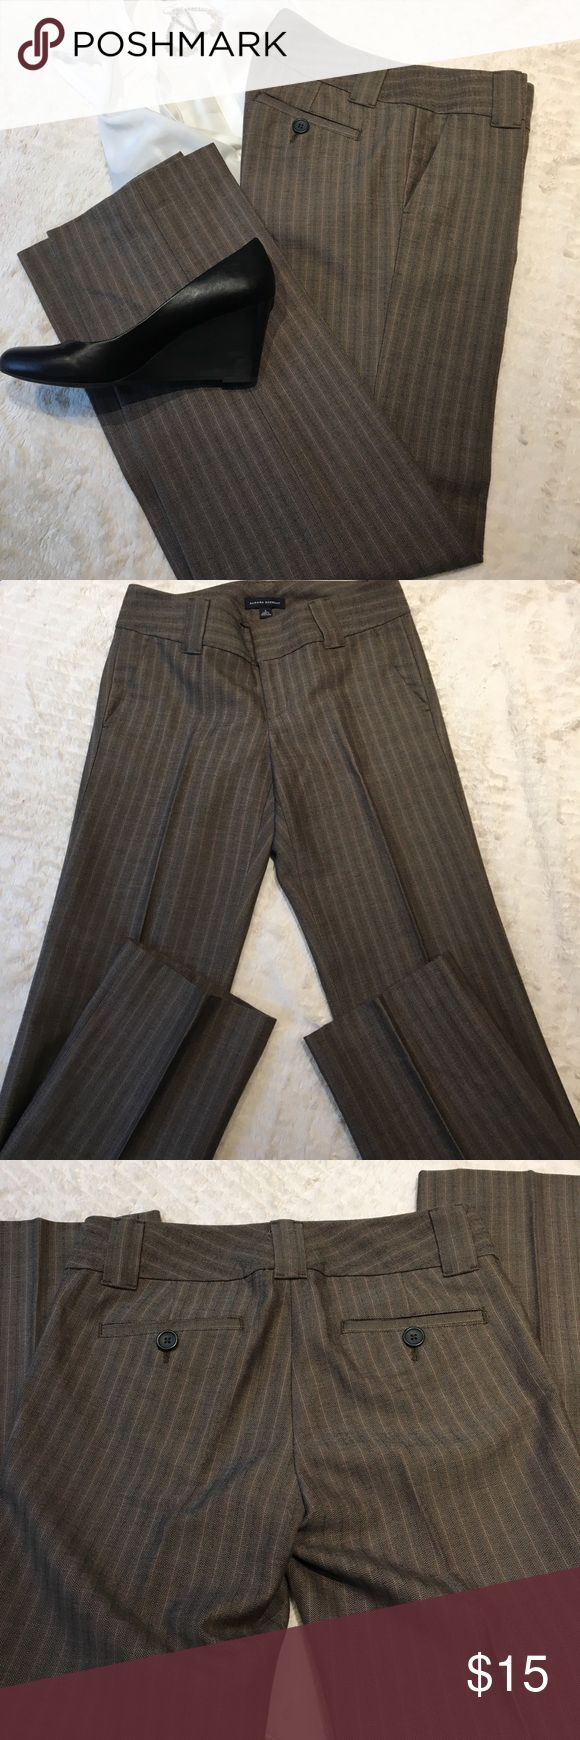 "Banana Republic Sz 4 Brown Slacks NWOT Brown low rise pants In pristine condition! 32"" inseam for heels and ready to wear! Banana Republic Pants Trousers"